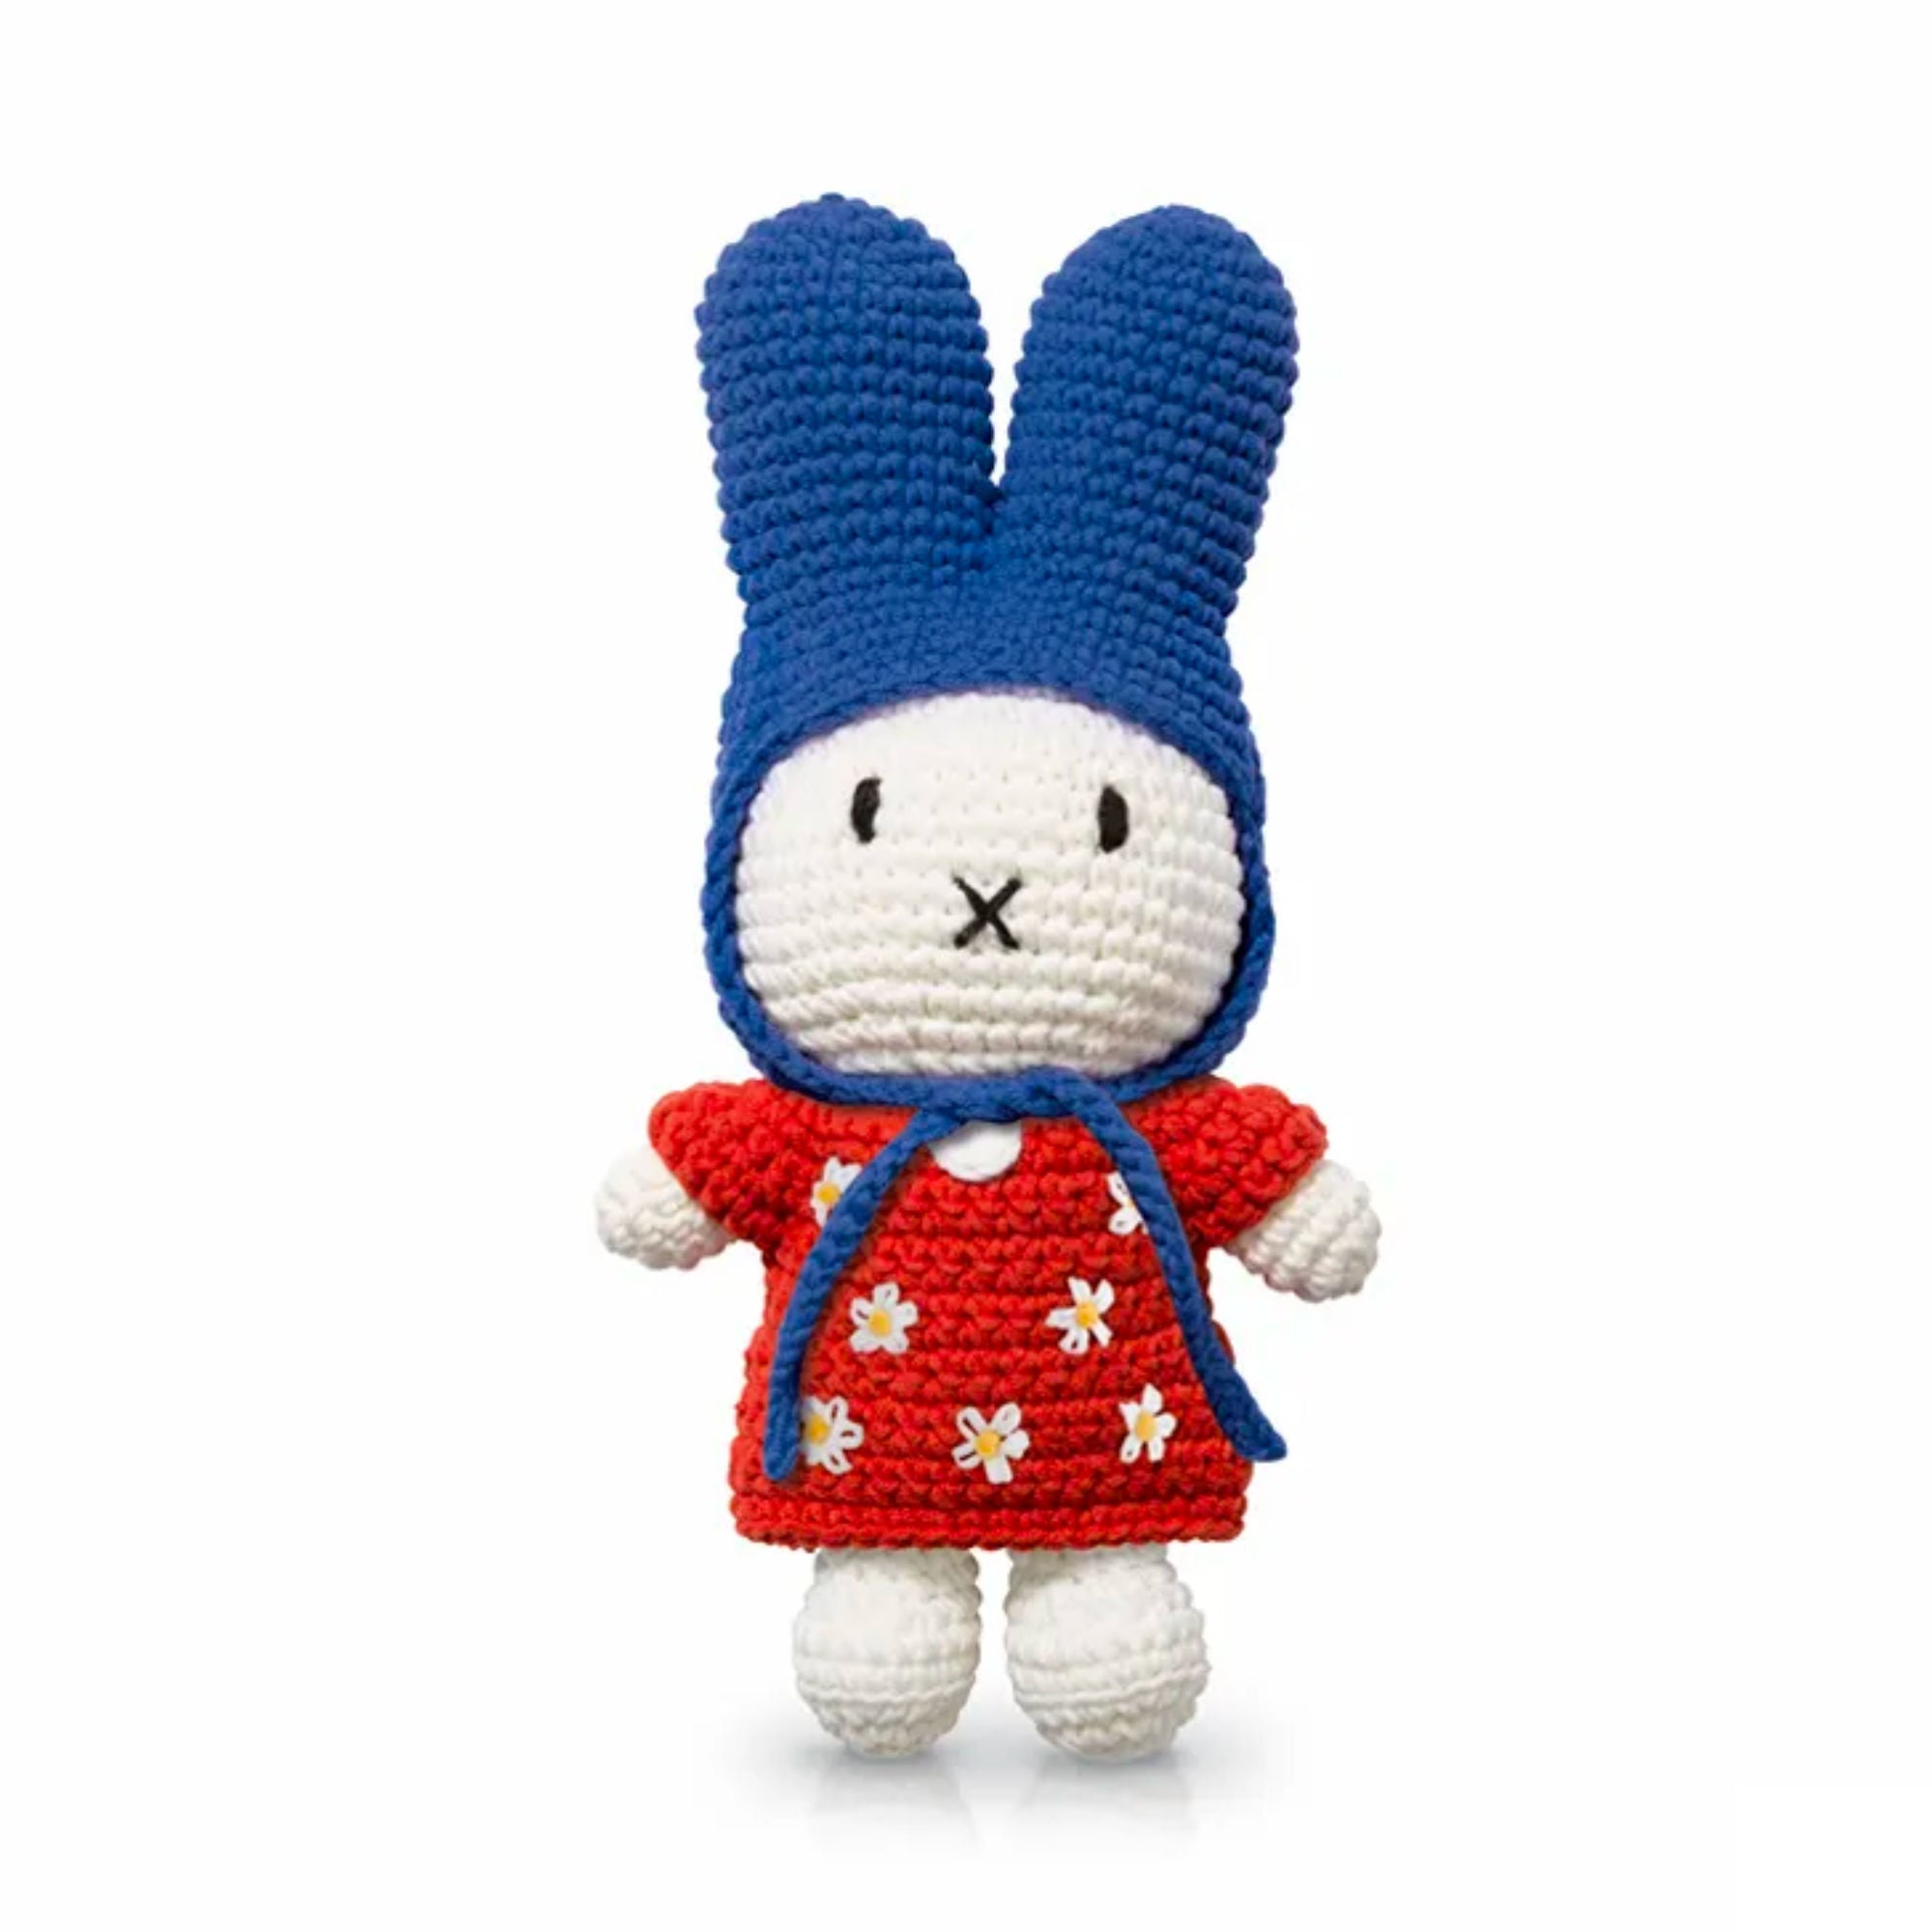 Just Dutch handmade doll, Miffy and her red flower dress - blue hat